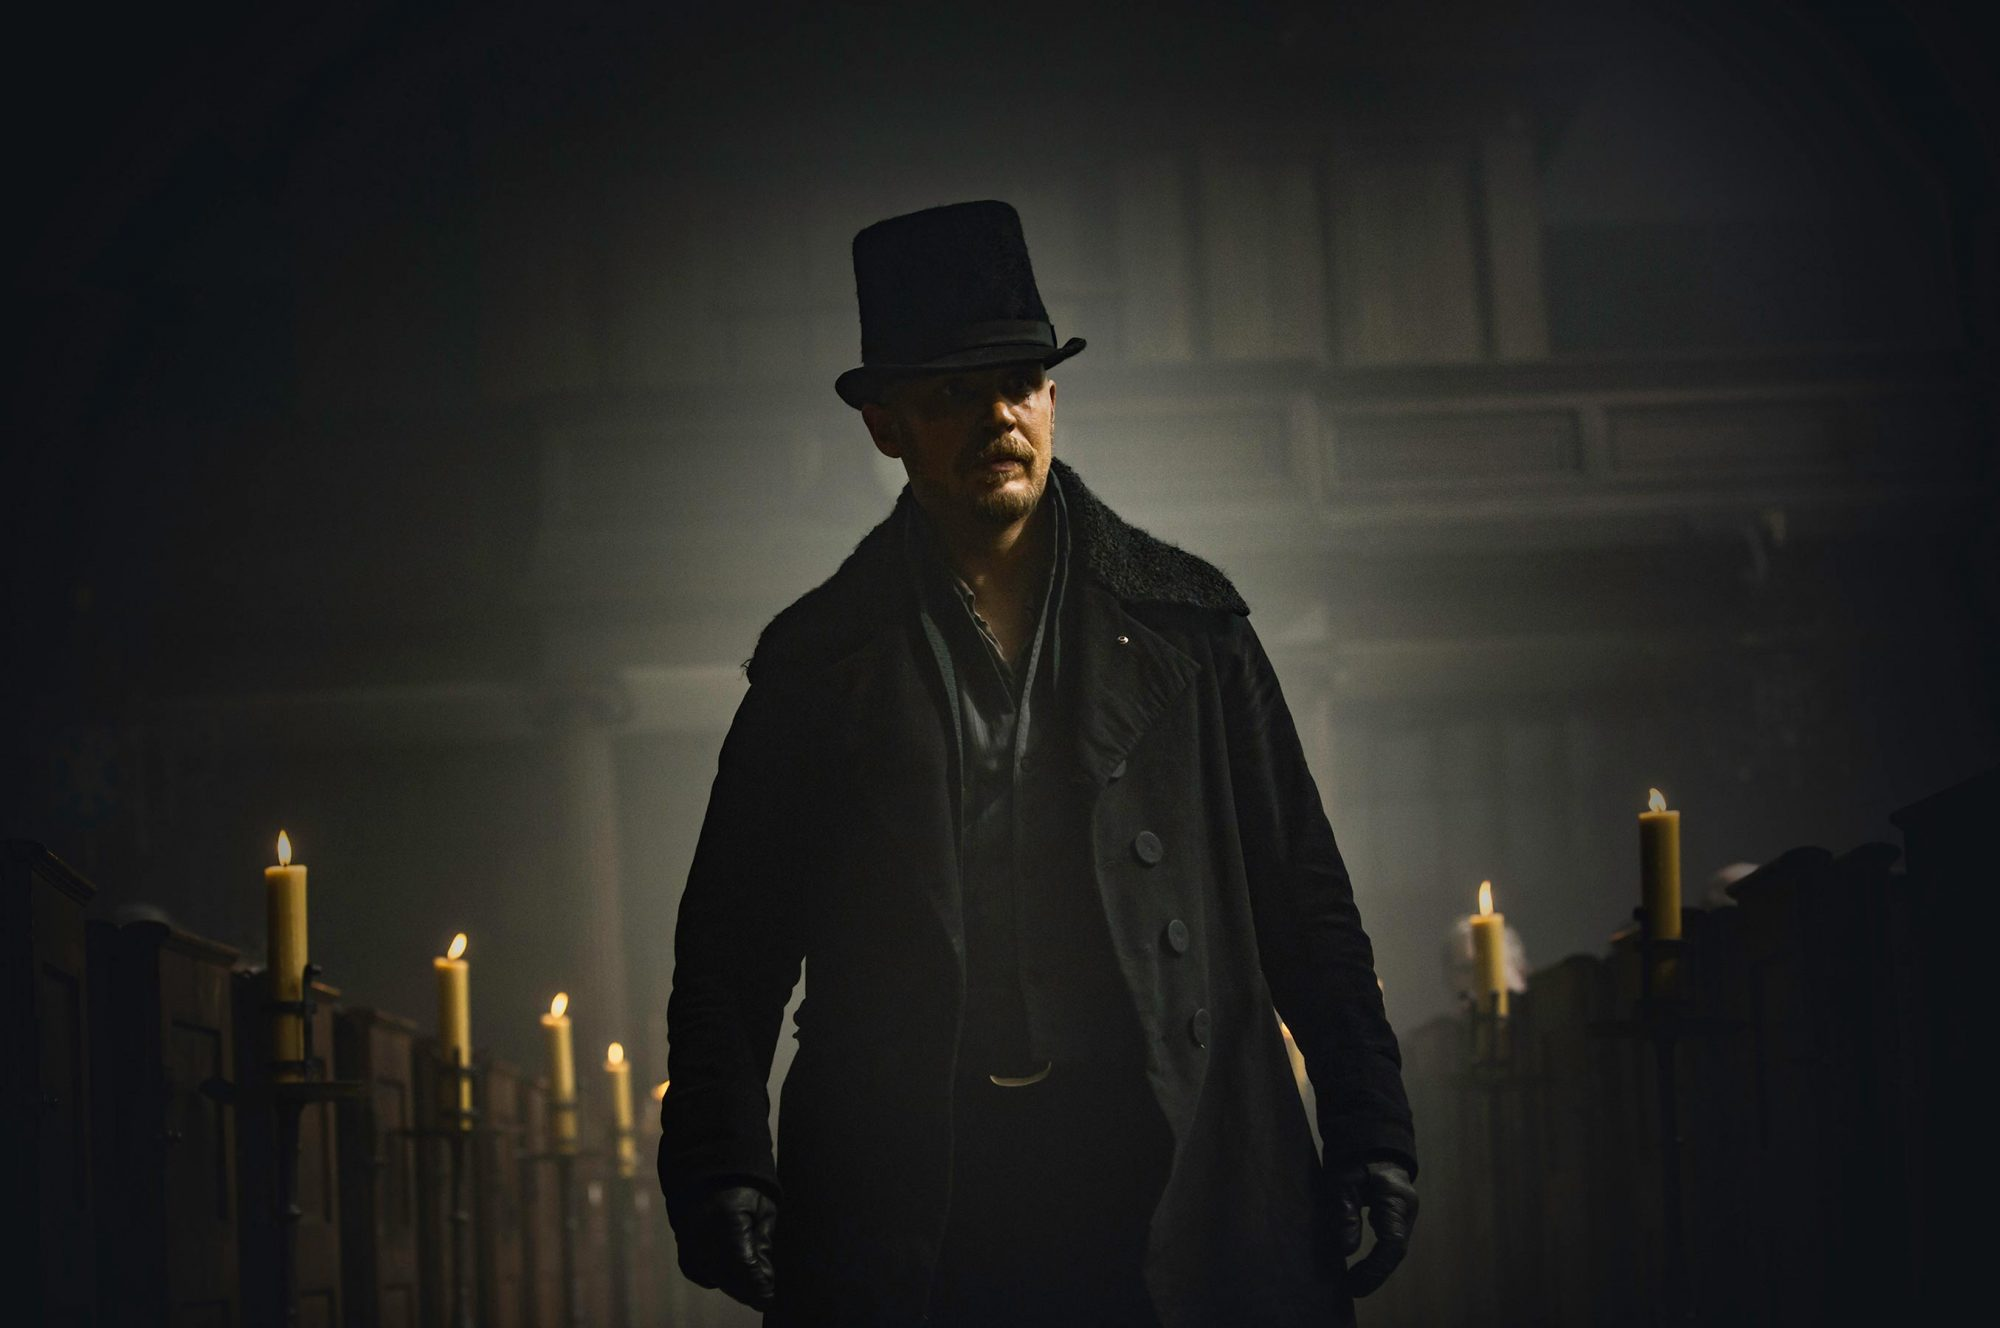 TABOOSeason 1, Episode 1Air Date: January 10, 2017Pictured: Tom Hardy